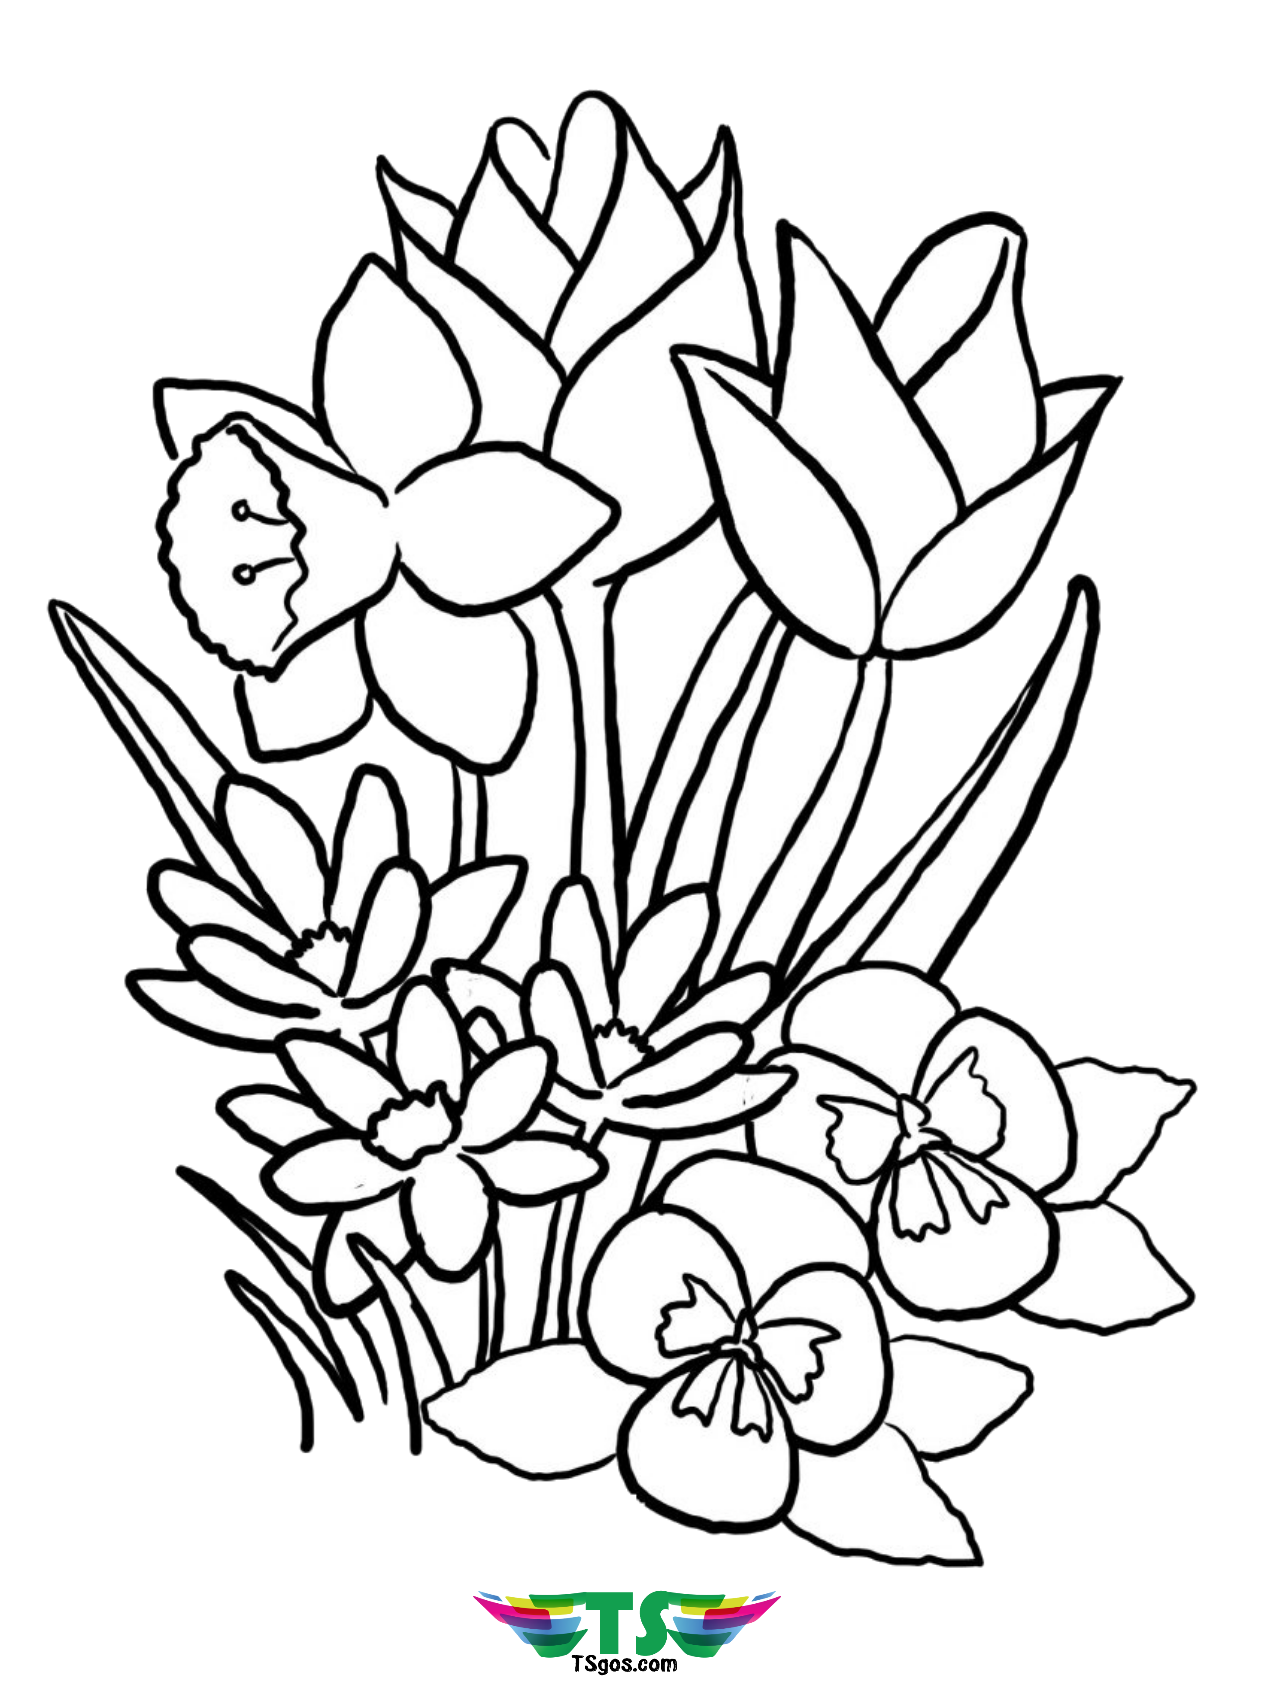 color page flower wild flowers coloring pages coloring home flower page color